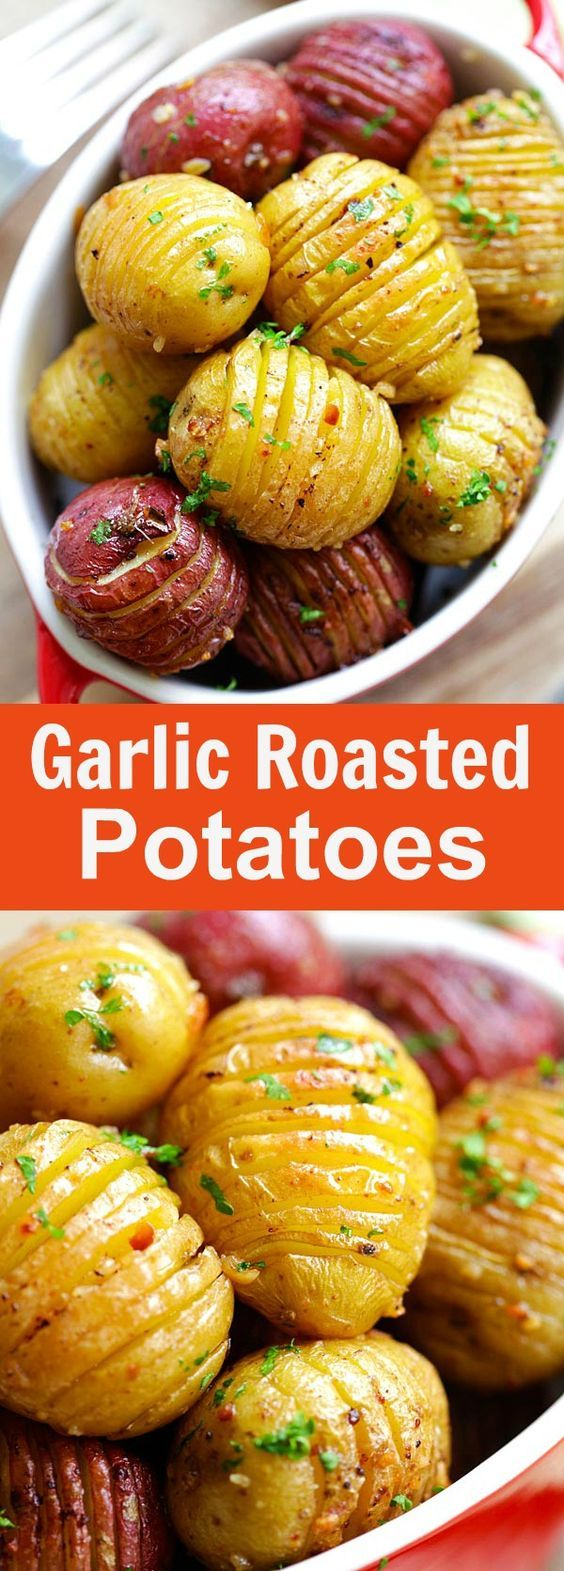 Best 25+ Herb roasted potatoes ideas on Pinterest ...